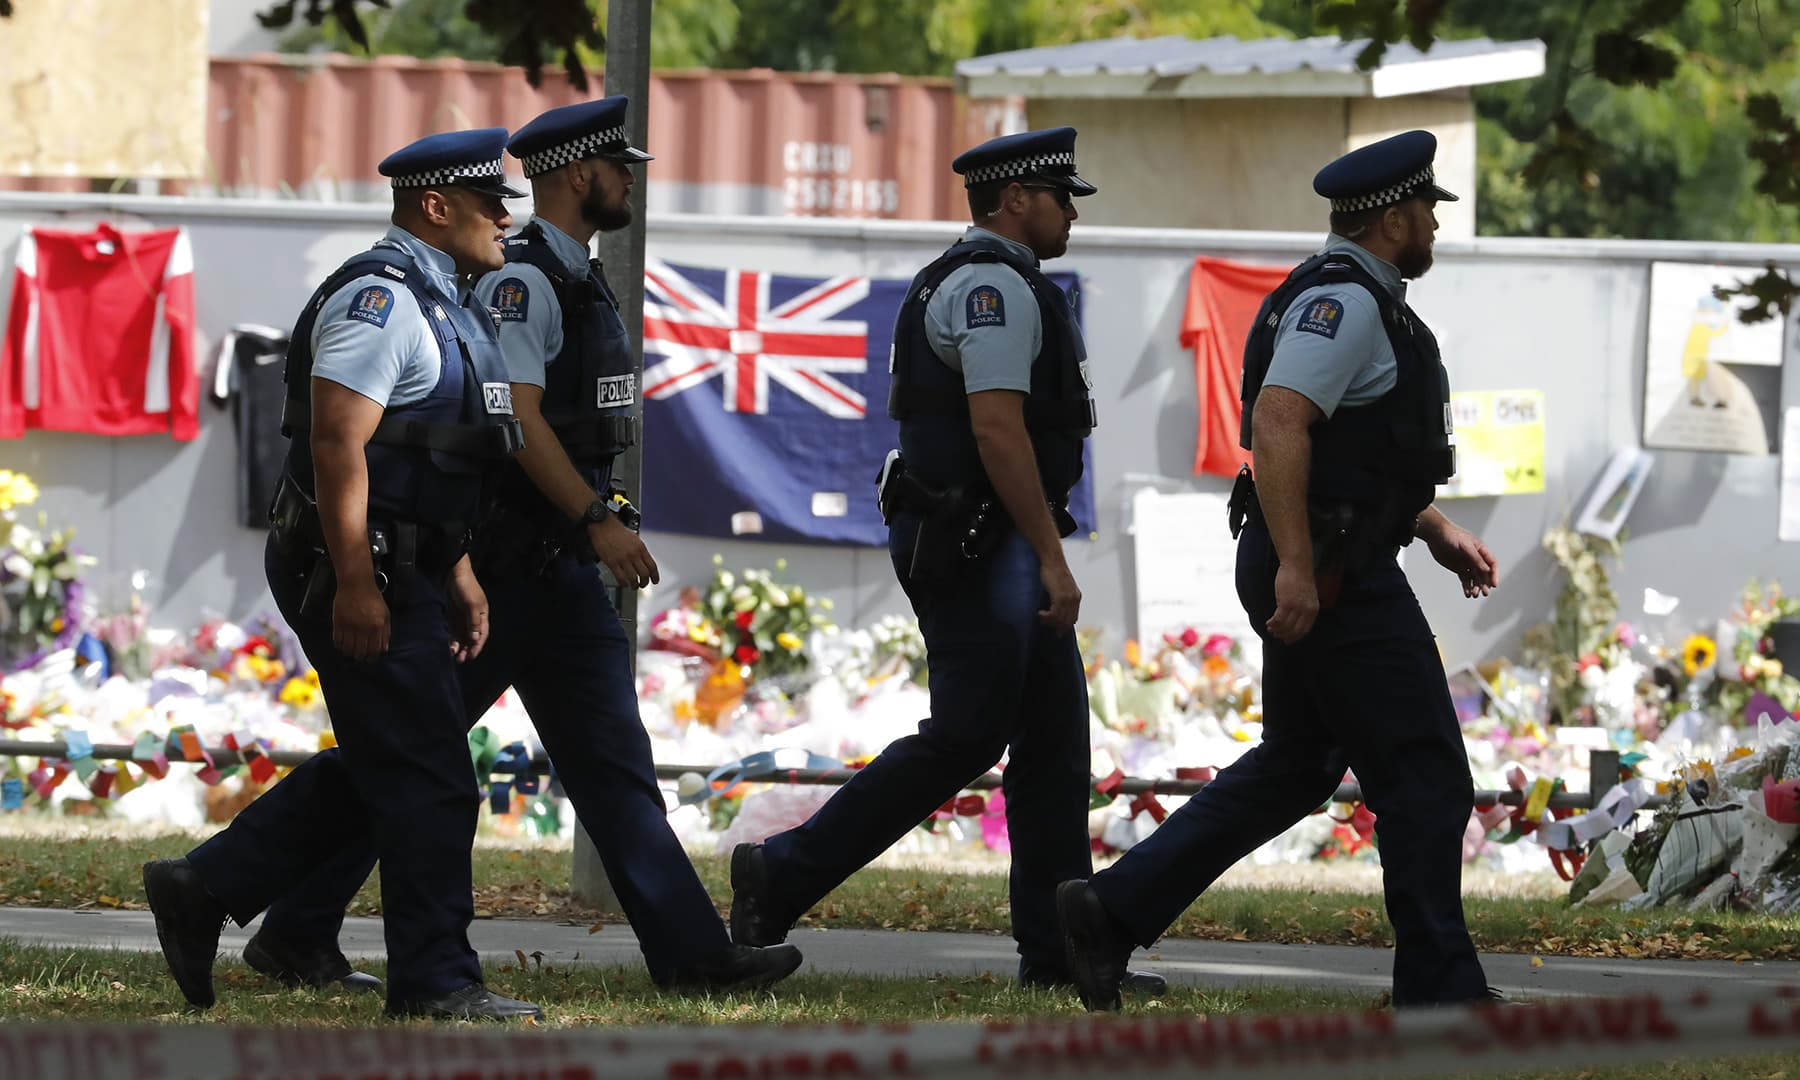 Armed police officers patrol outside Al Noor mosque ahead of Friday prayers at Hagley Park in Christchurch. — AP